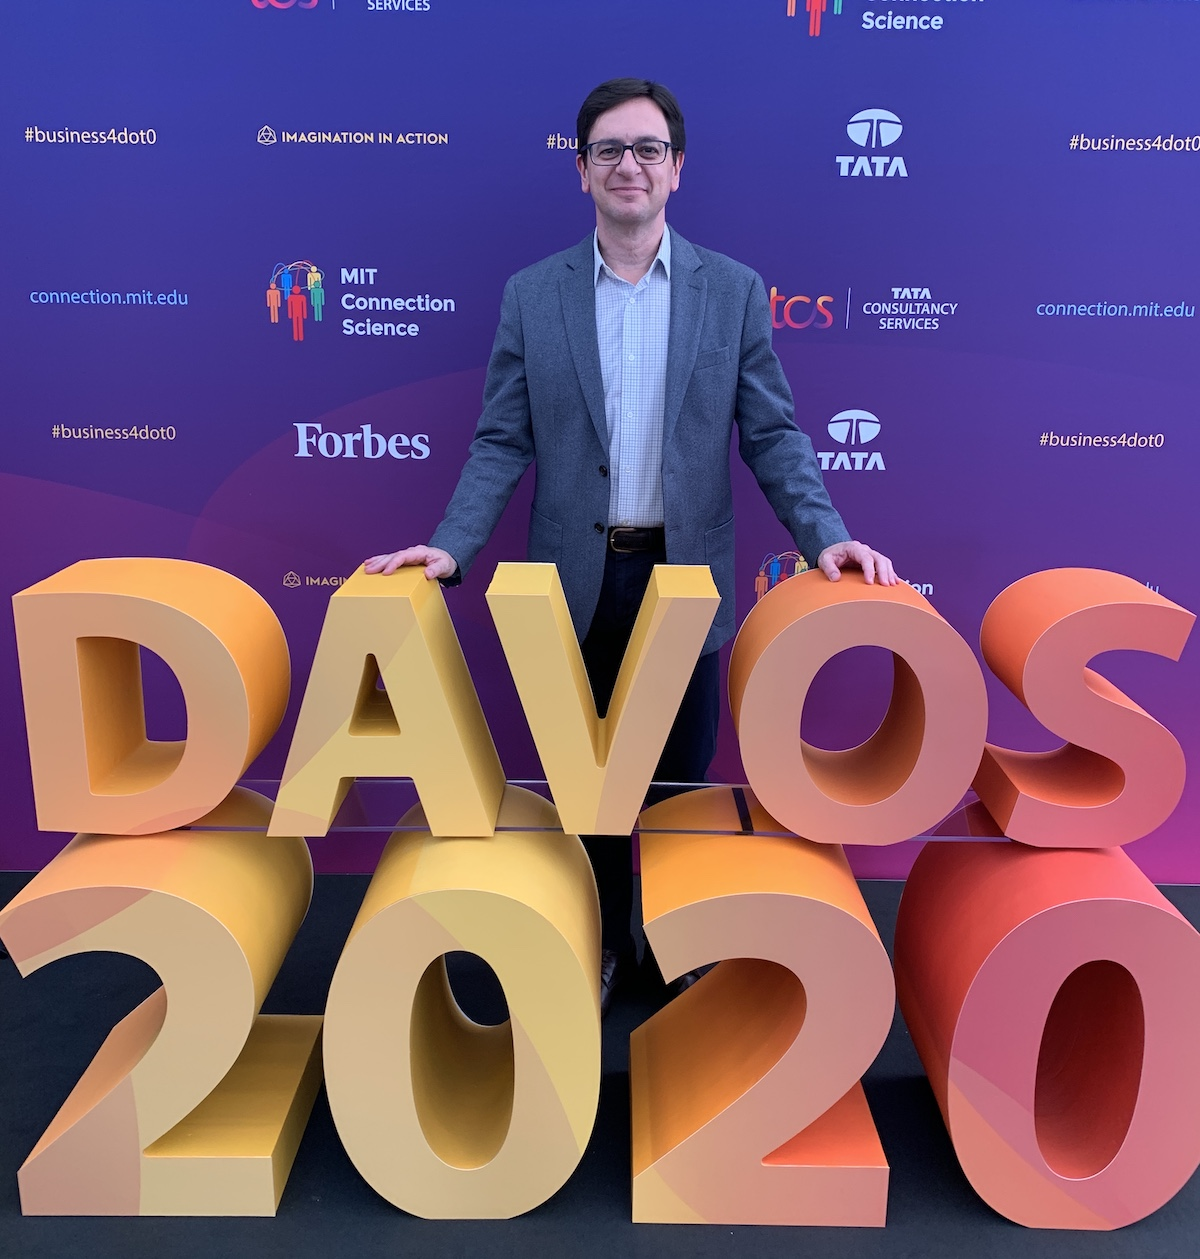 Participation at Davos conference 2020